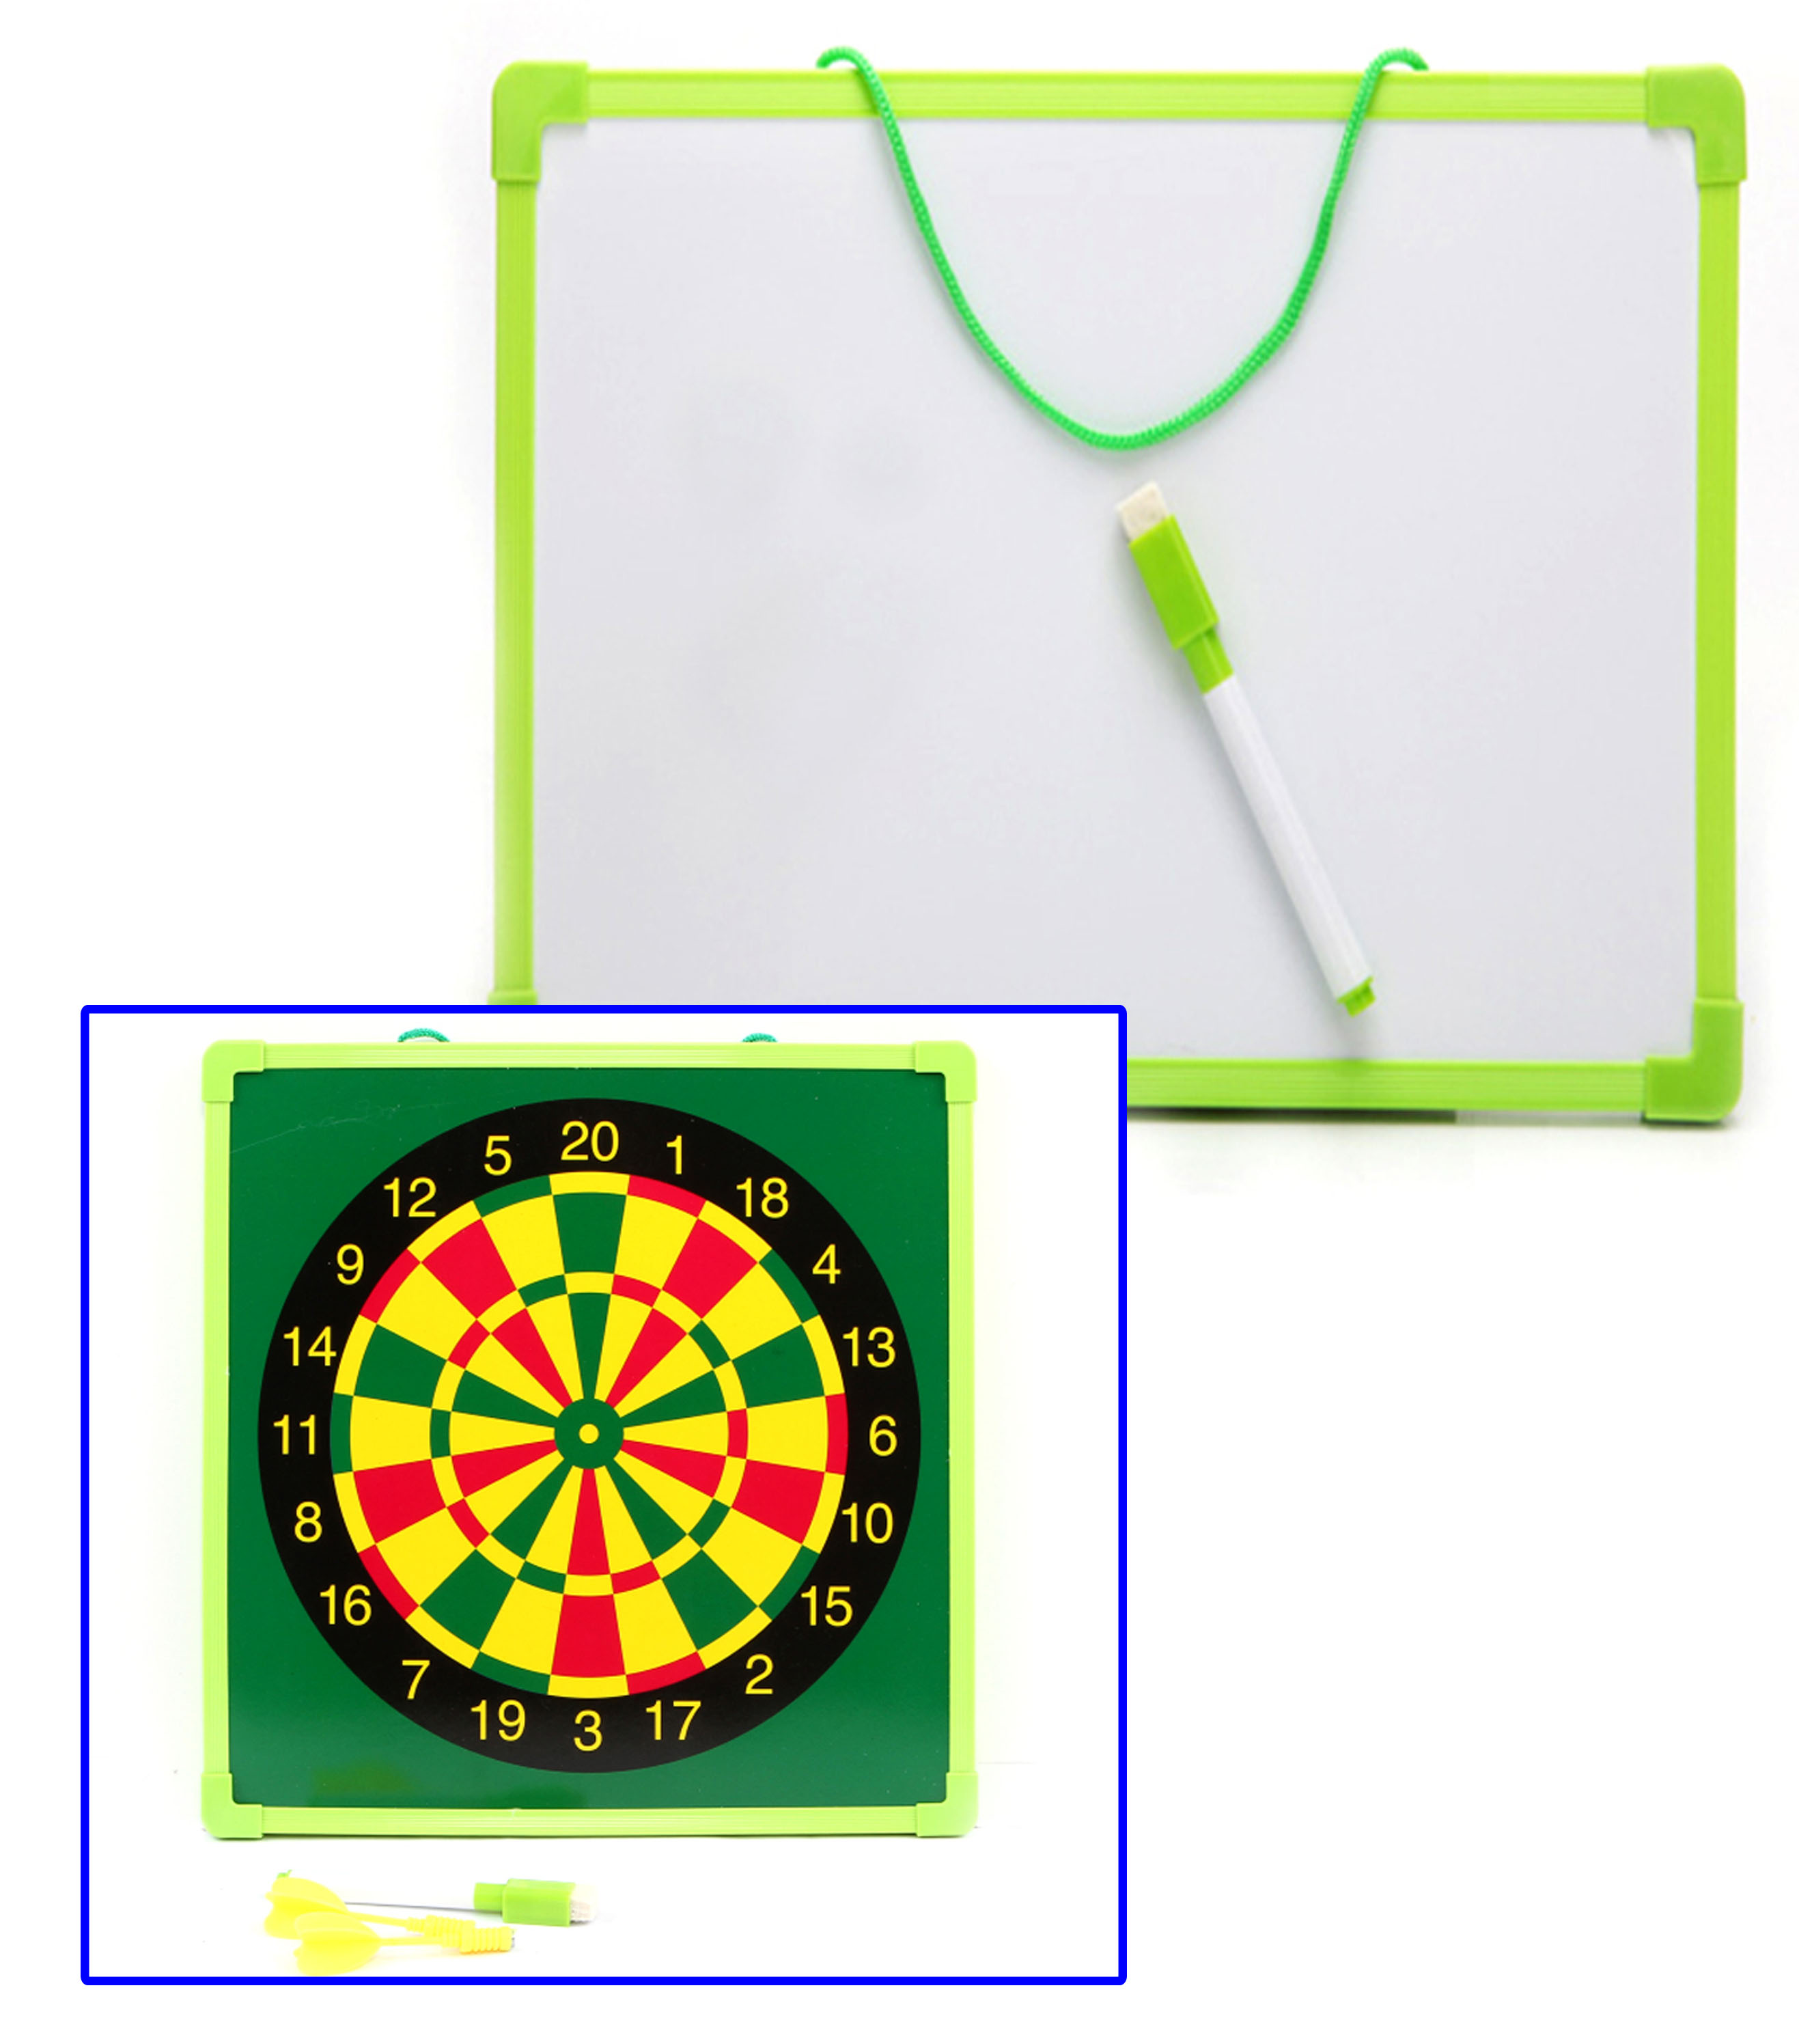 29*29cm Two-Sided Whiteboard With Plastic Frame Dry Erase Lapboards For Kids - Yola WhiteBoard | szyola.net